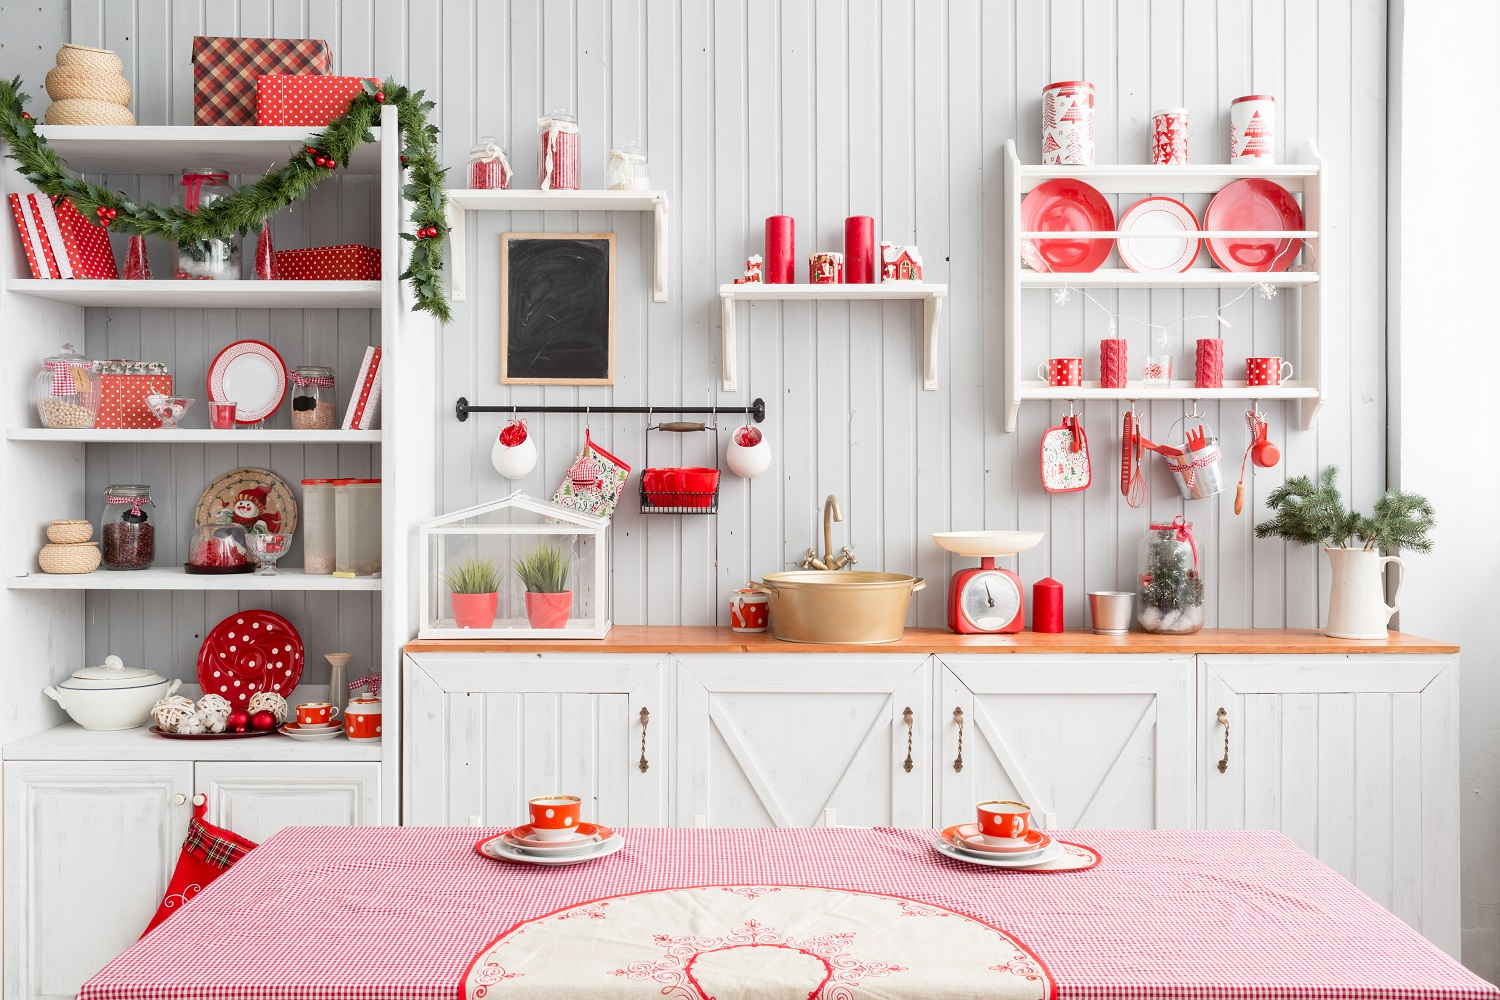 Winter kitchen with Christmas accessories